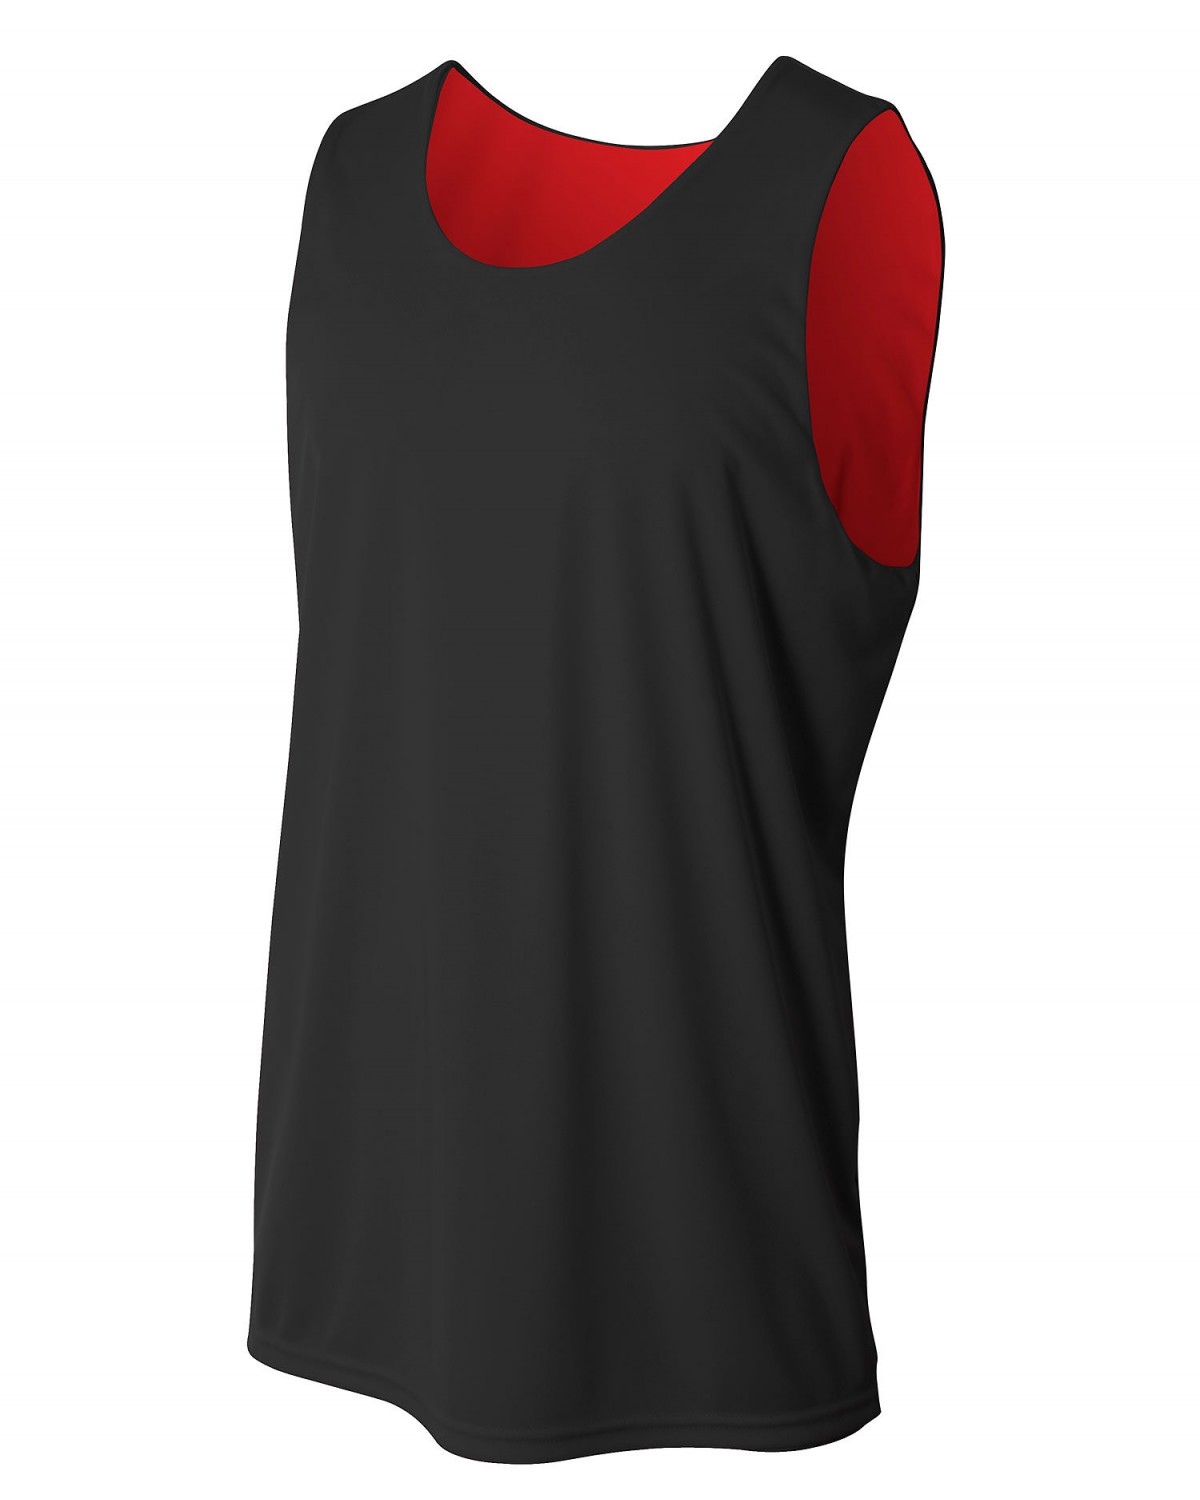 A882L Anvil Heather Dark Grey